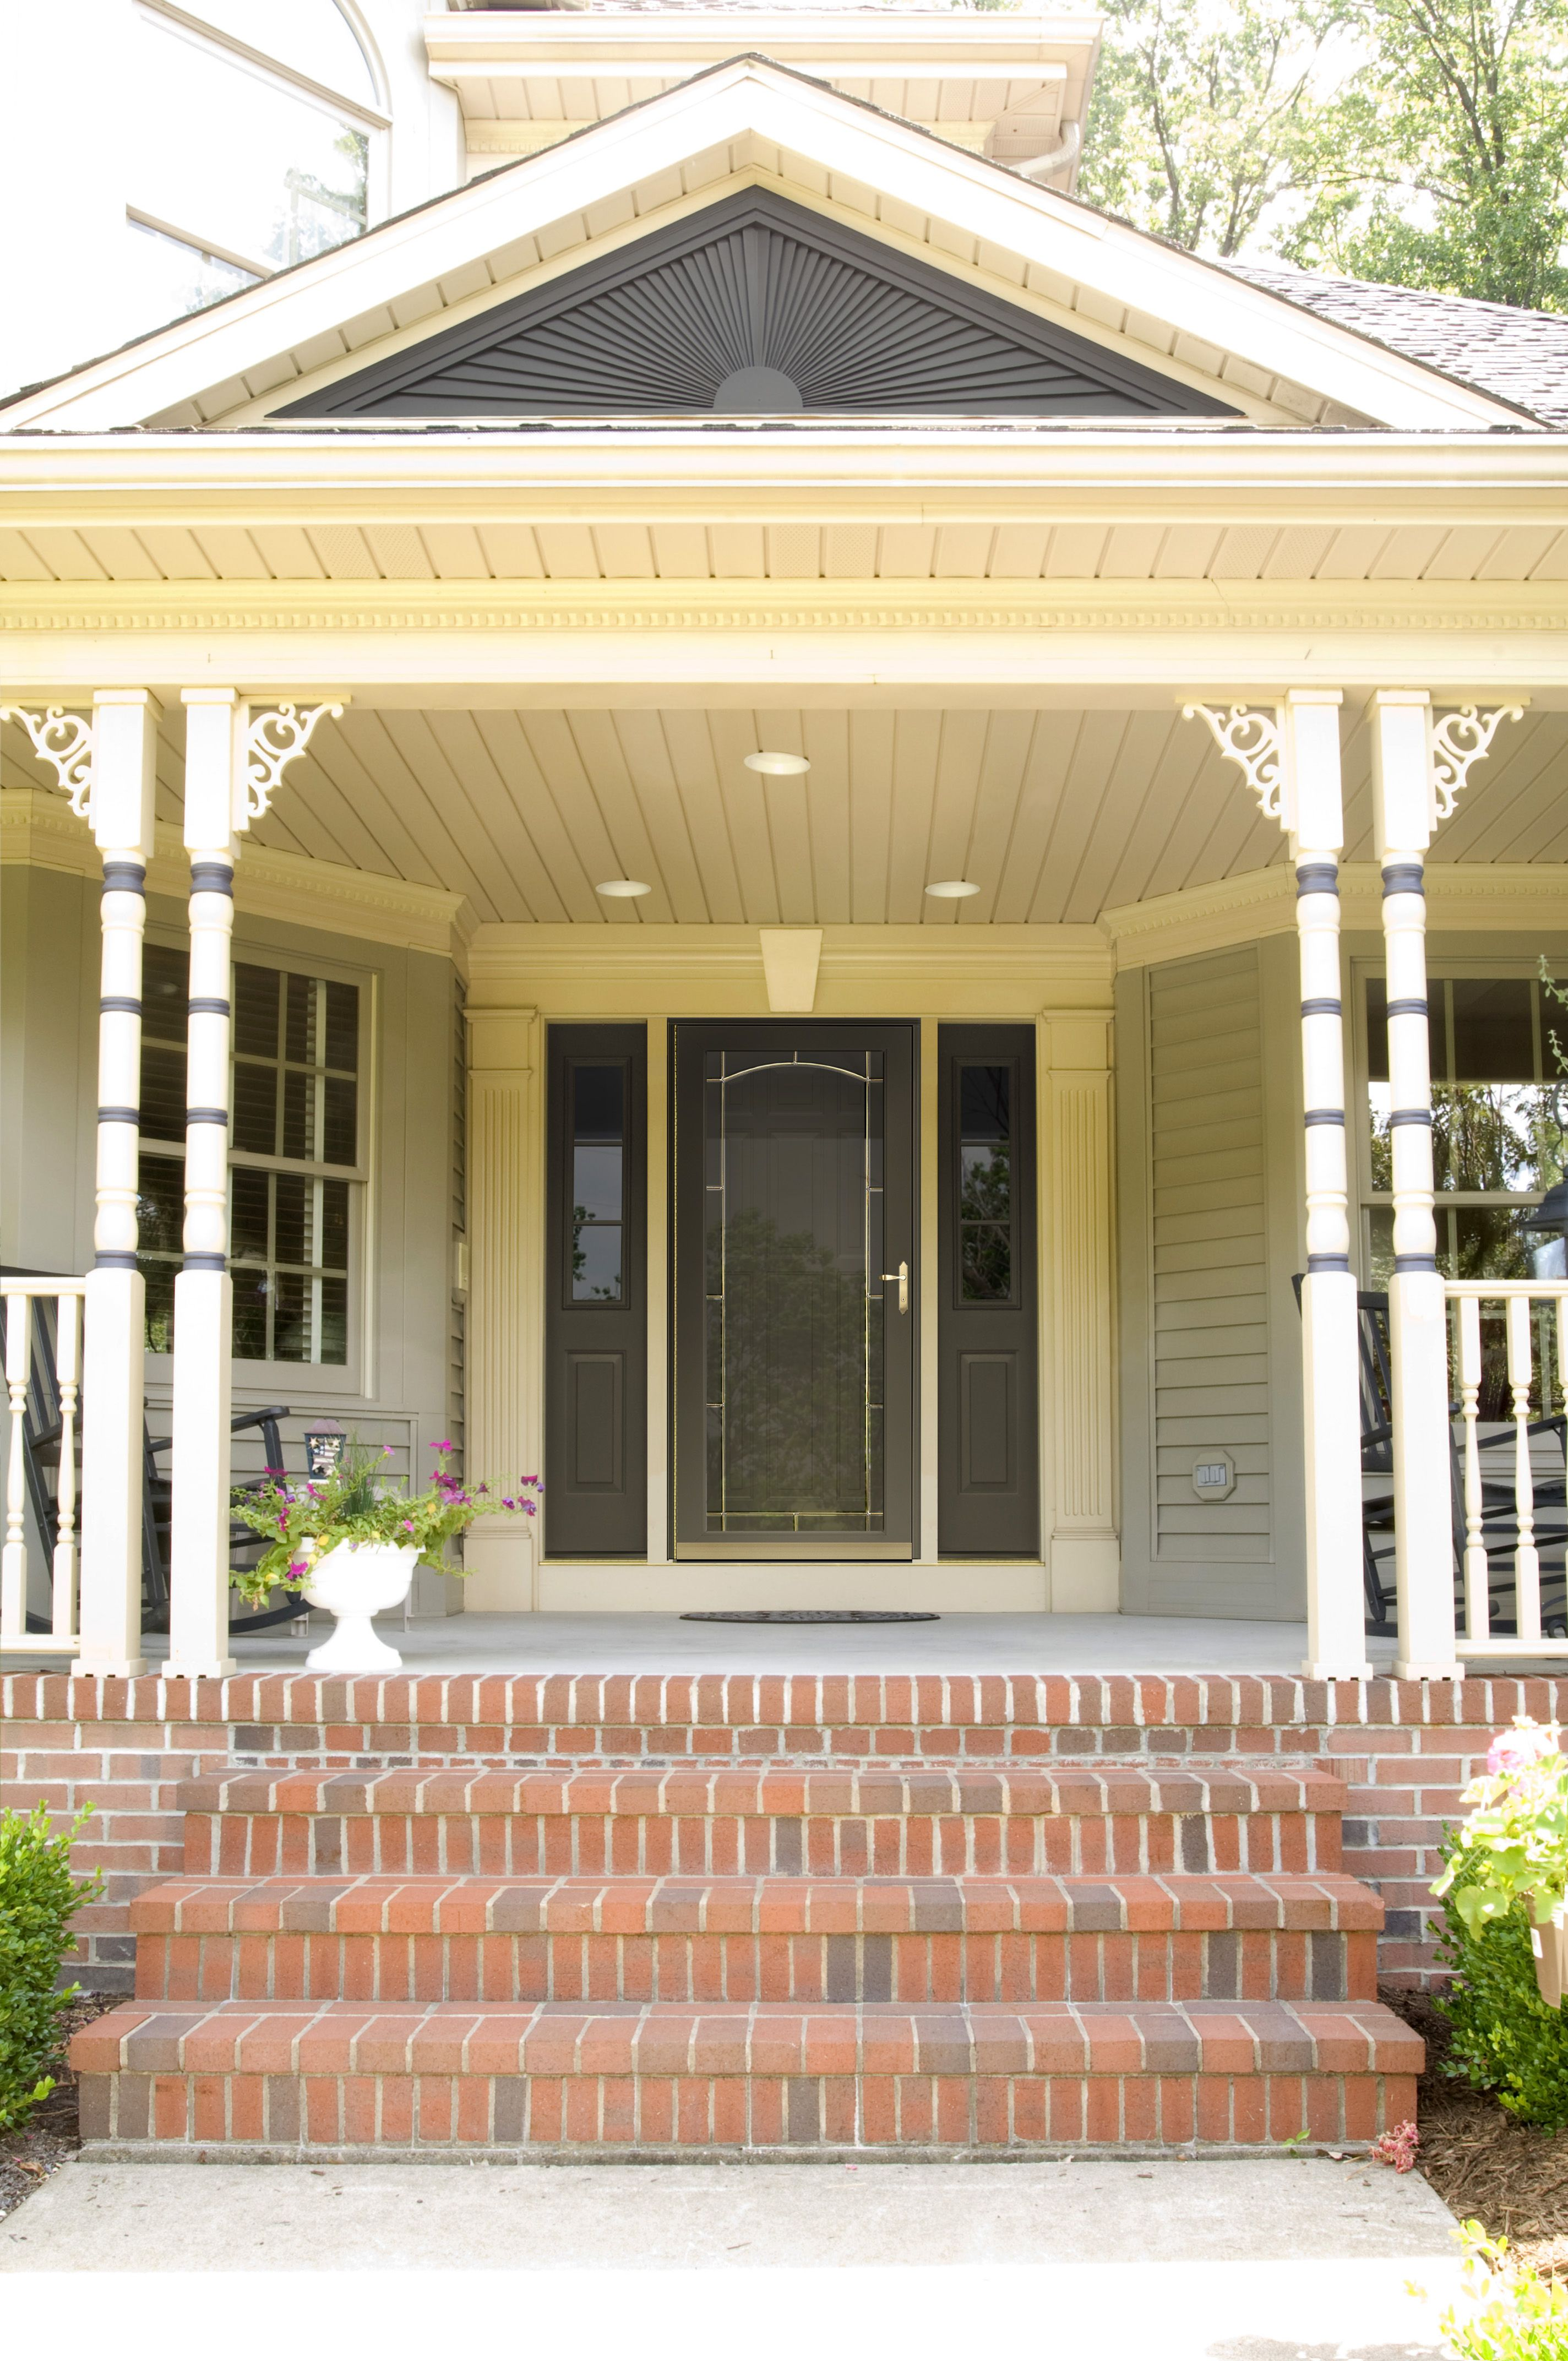 Beautiful Provia Storm Door Call Thomas V Giel Garage Doors For A